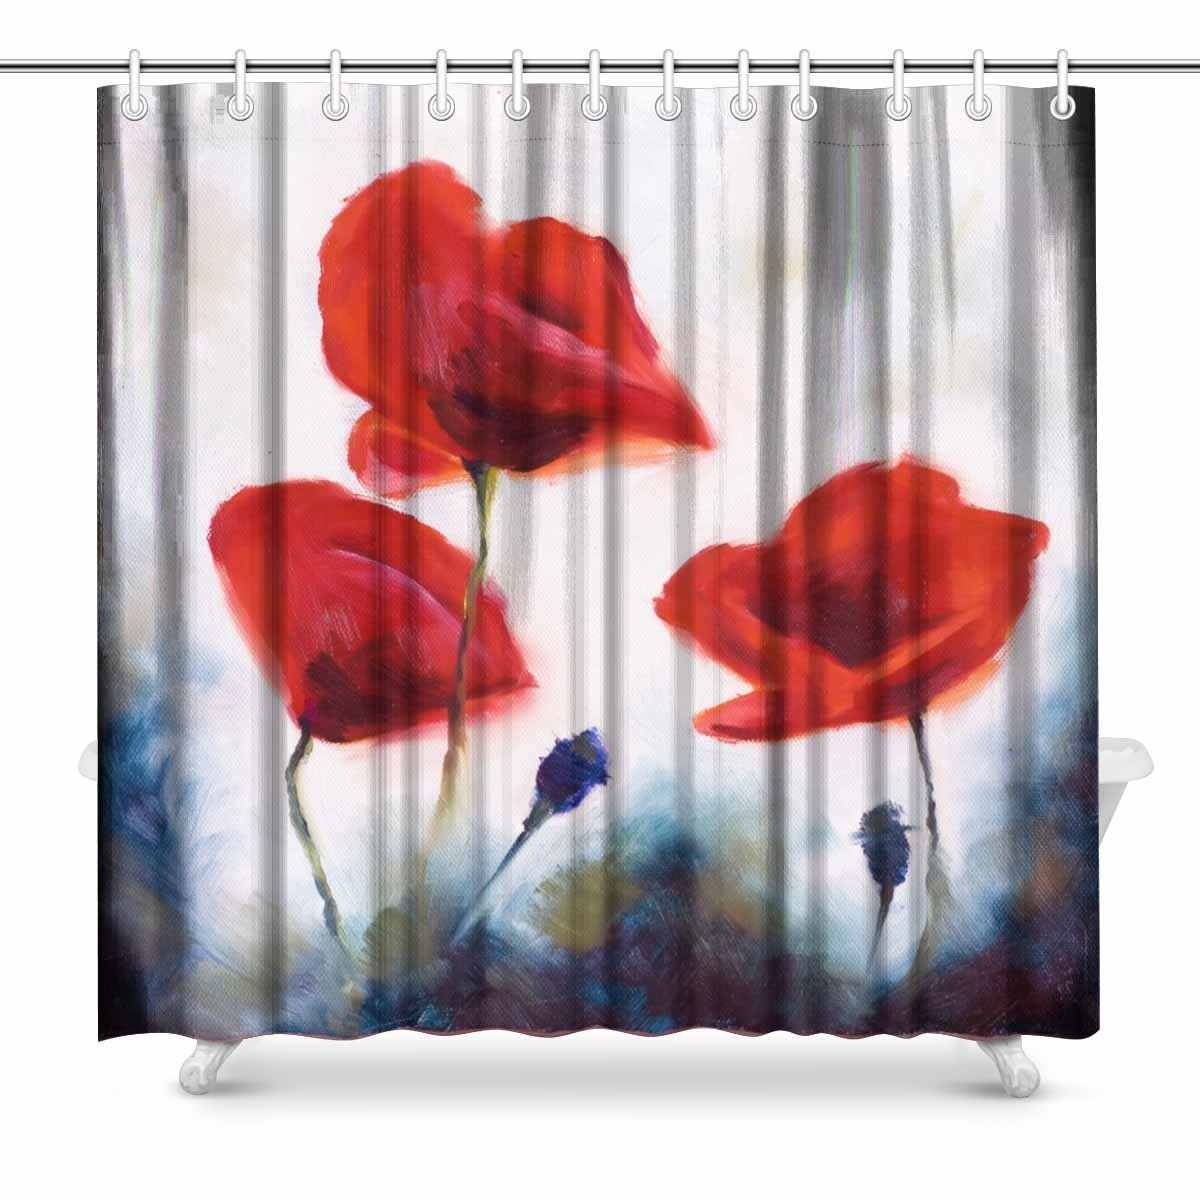 Aplysia Blossoming Poppy And Poppy Buds Drawns Art Bathroom Decor Shower Curtain With Hooks 72 X 72 Inches